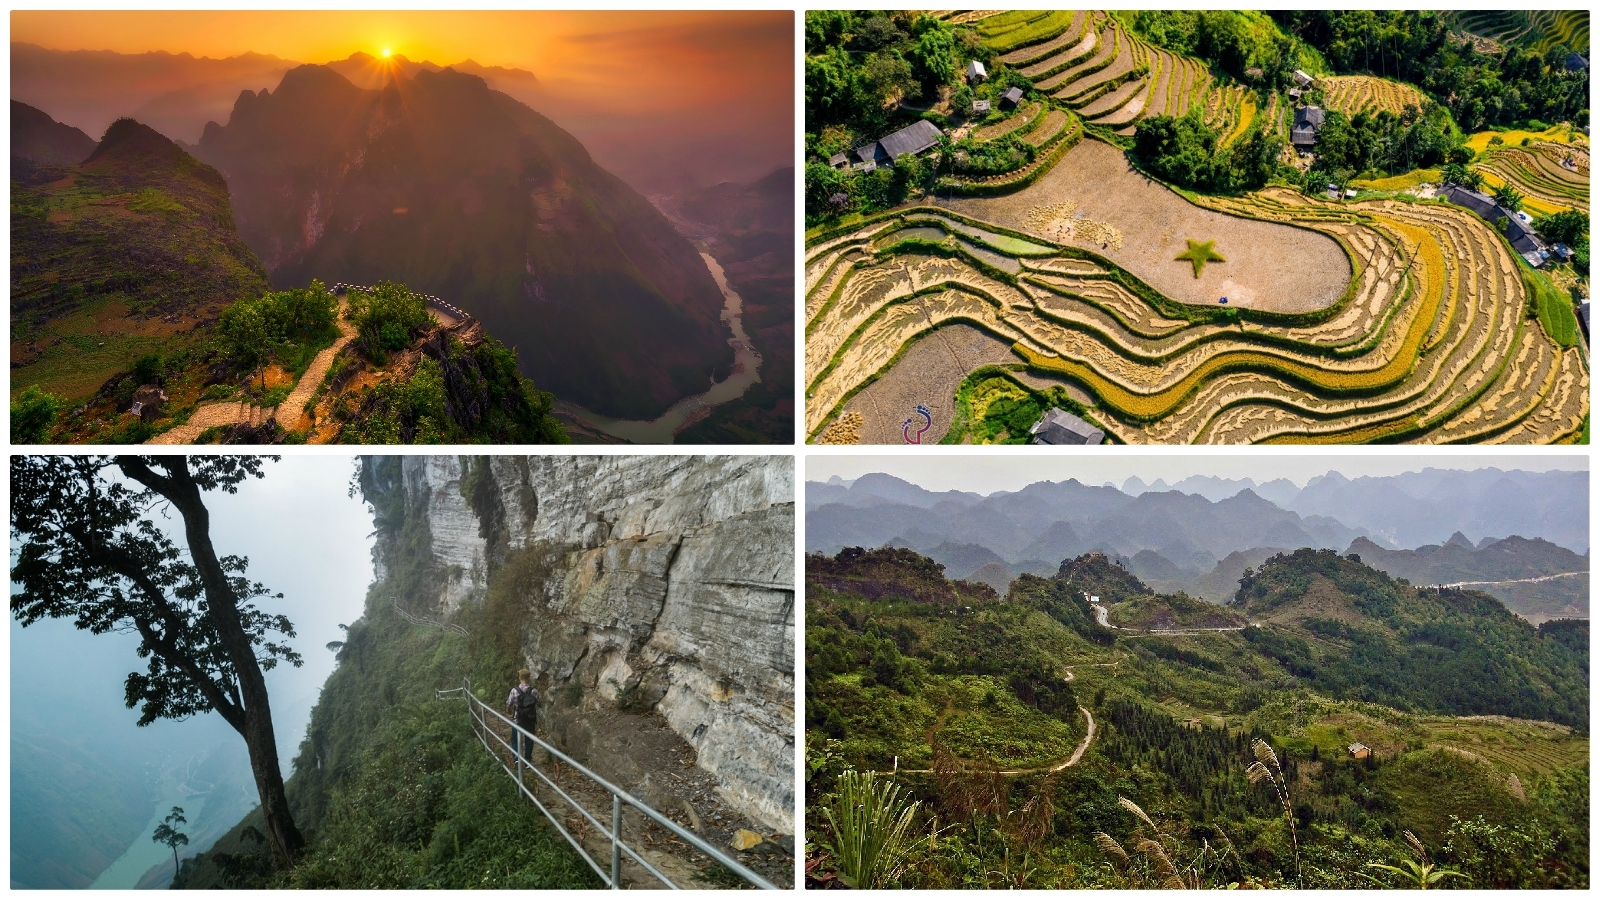 The landscape of Ha Giang